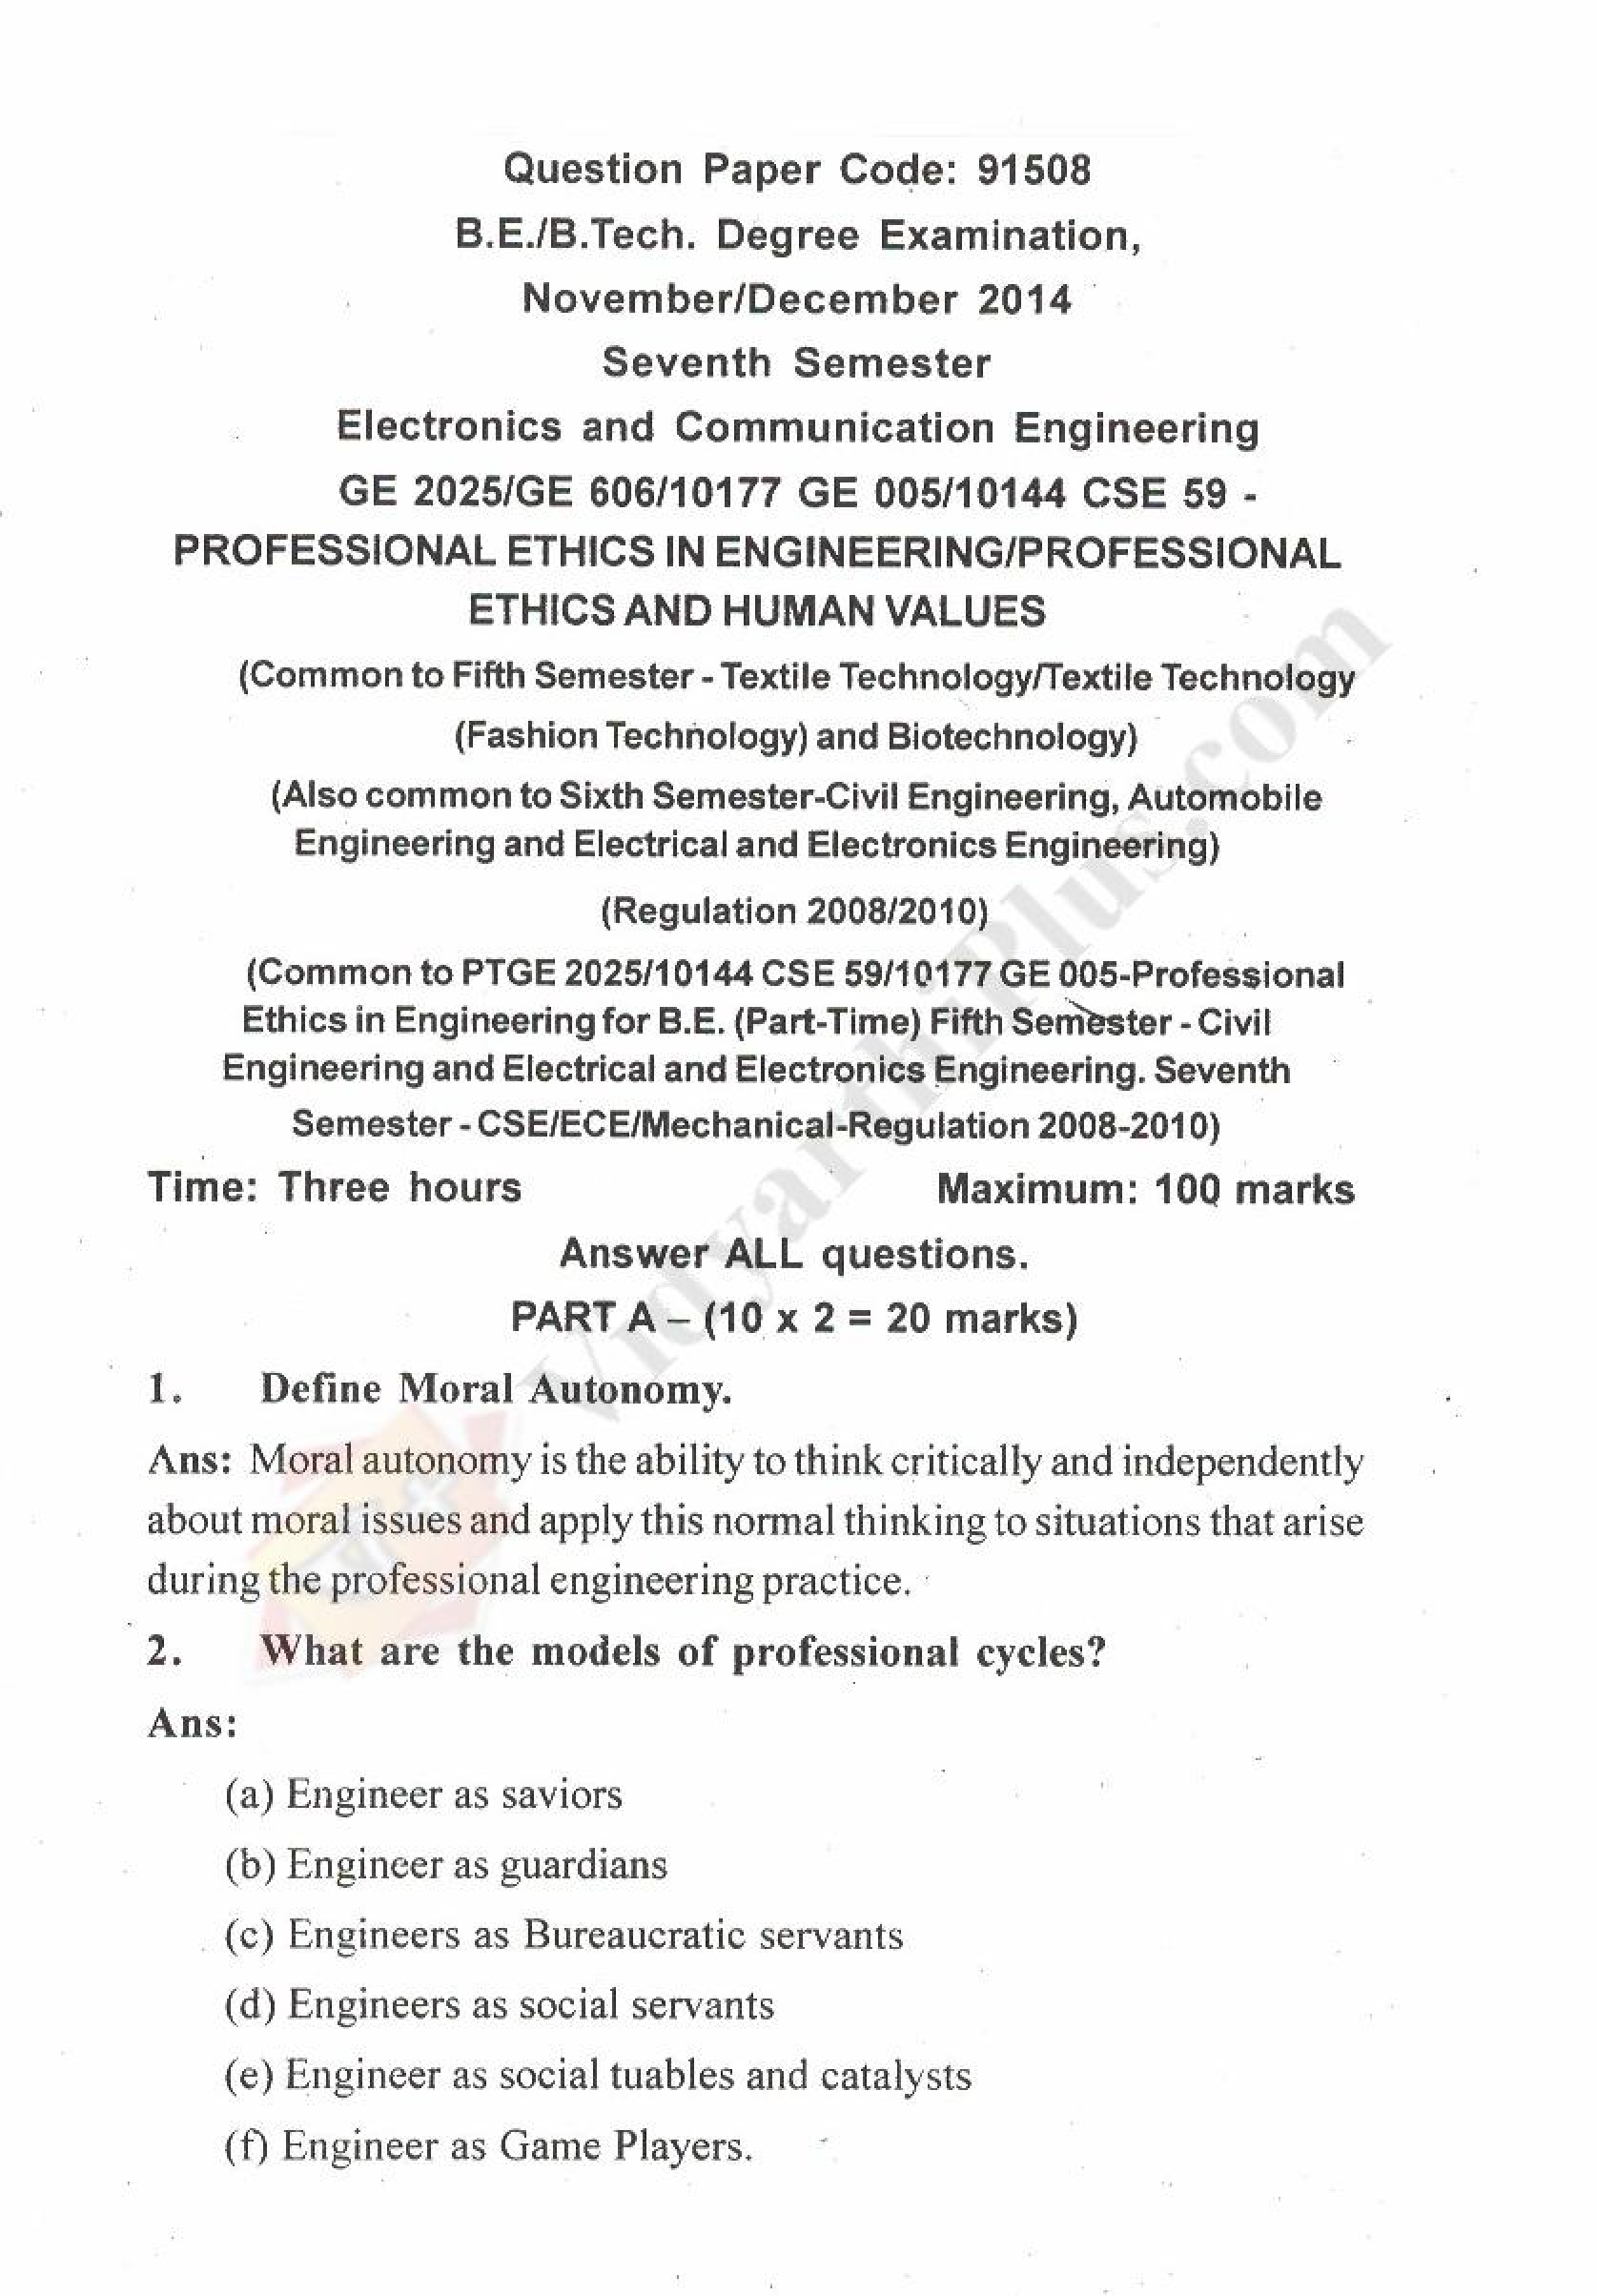 professional ethics in engineering pdf